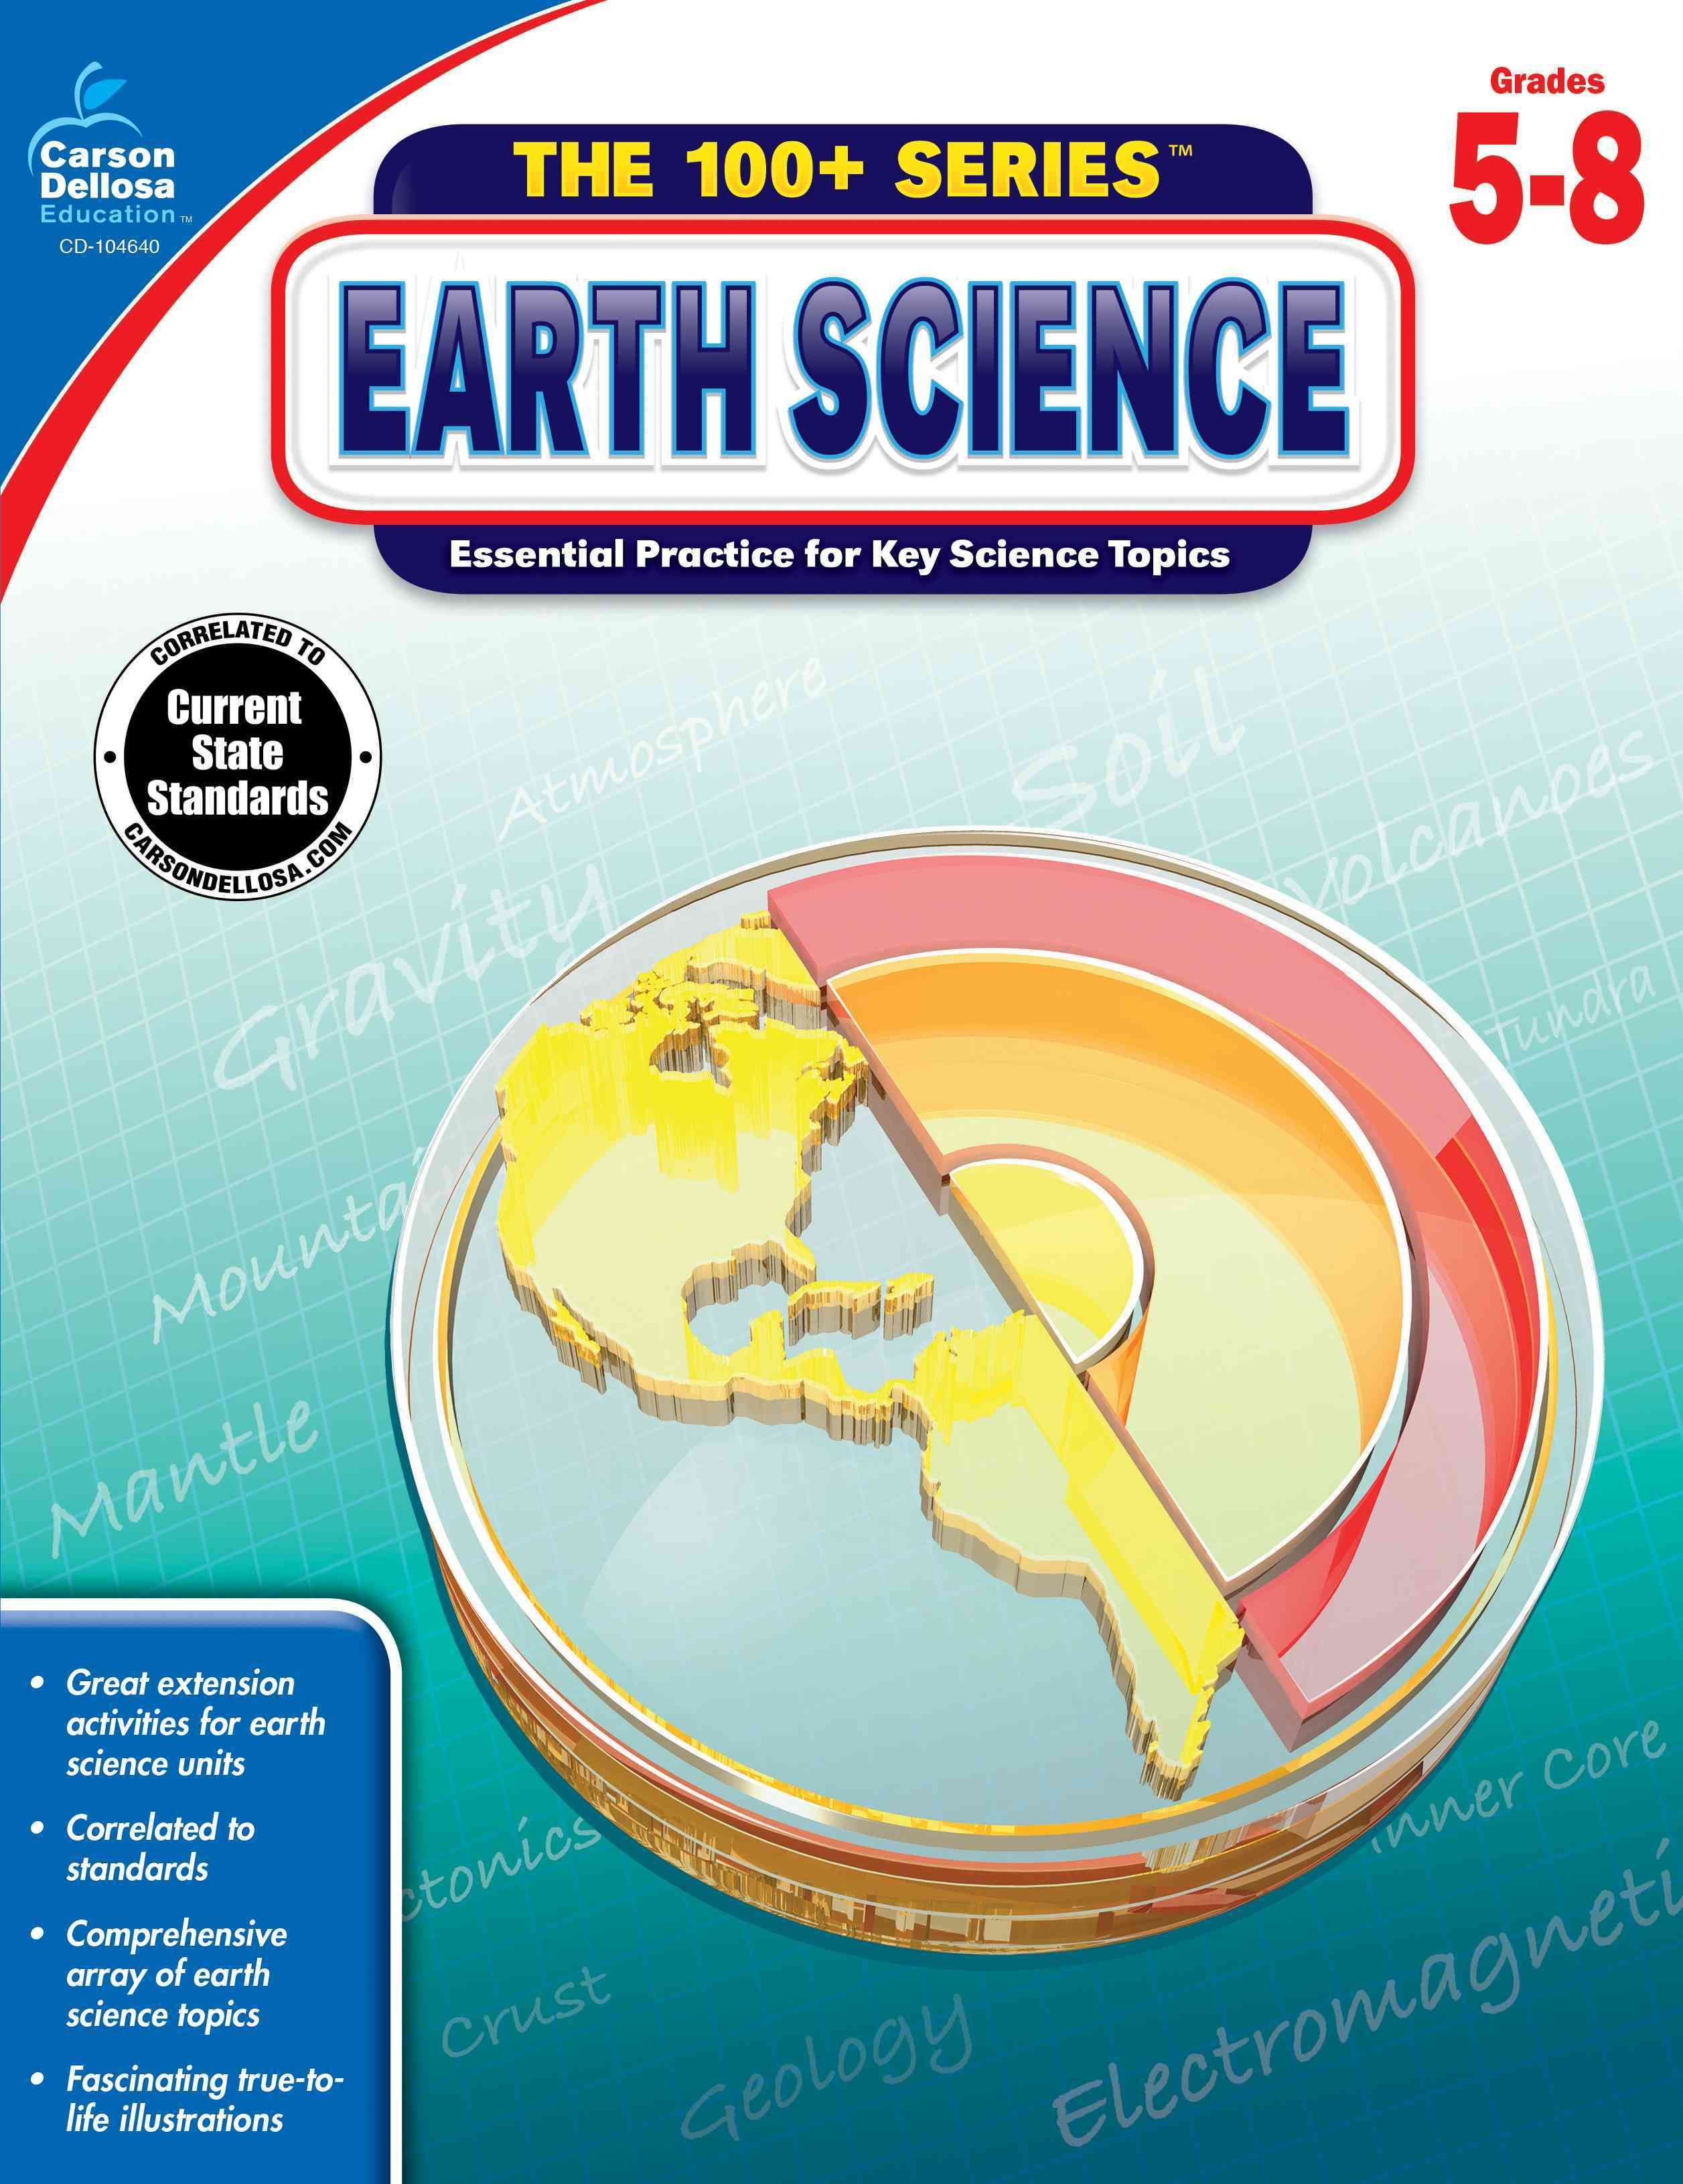 Earth Science Grades 5 8 Products Pinterest